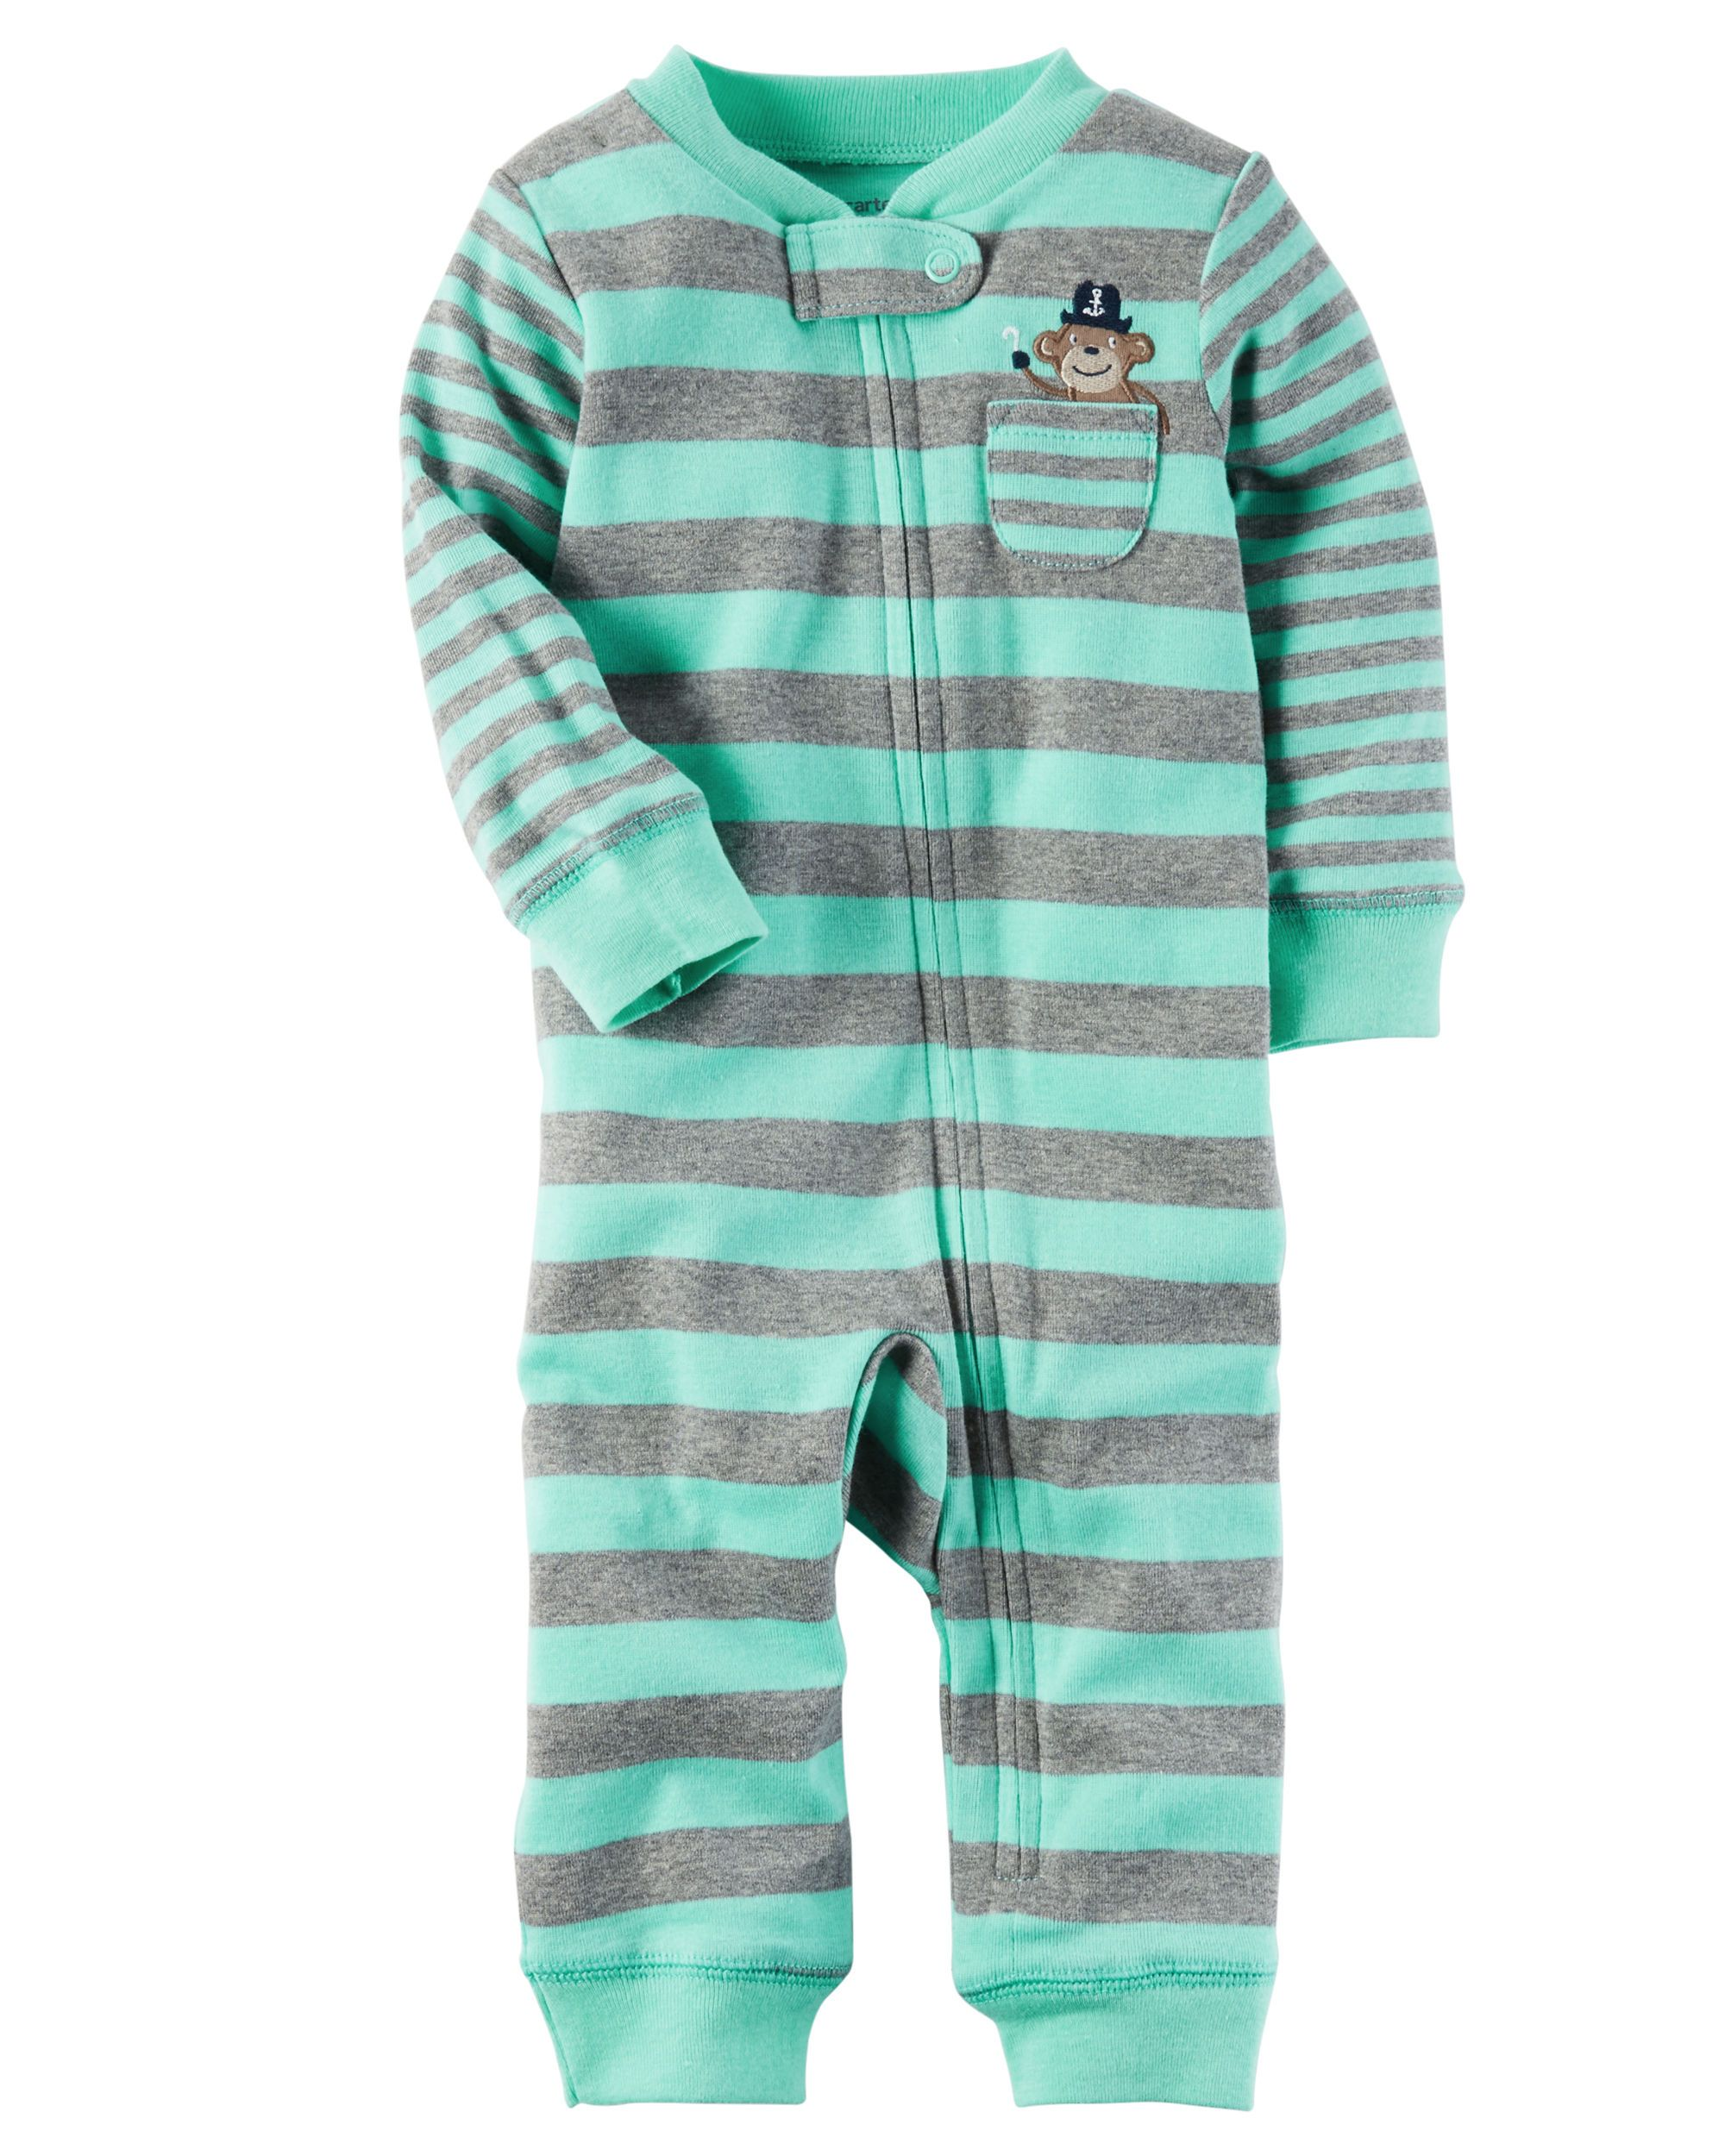 79e9dca652 Baby Boy Cotton Zip-Up Footless Sleep   Play